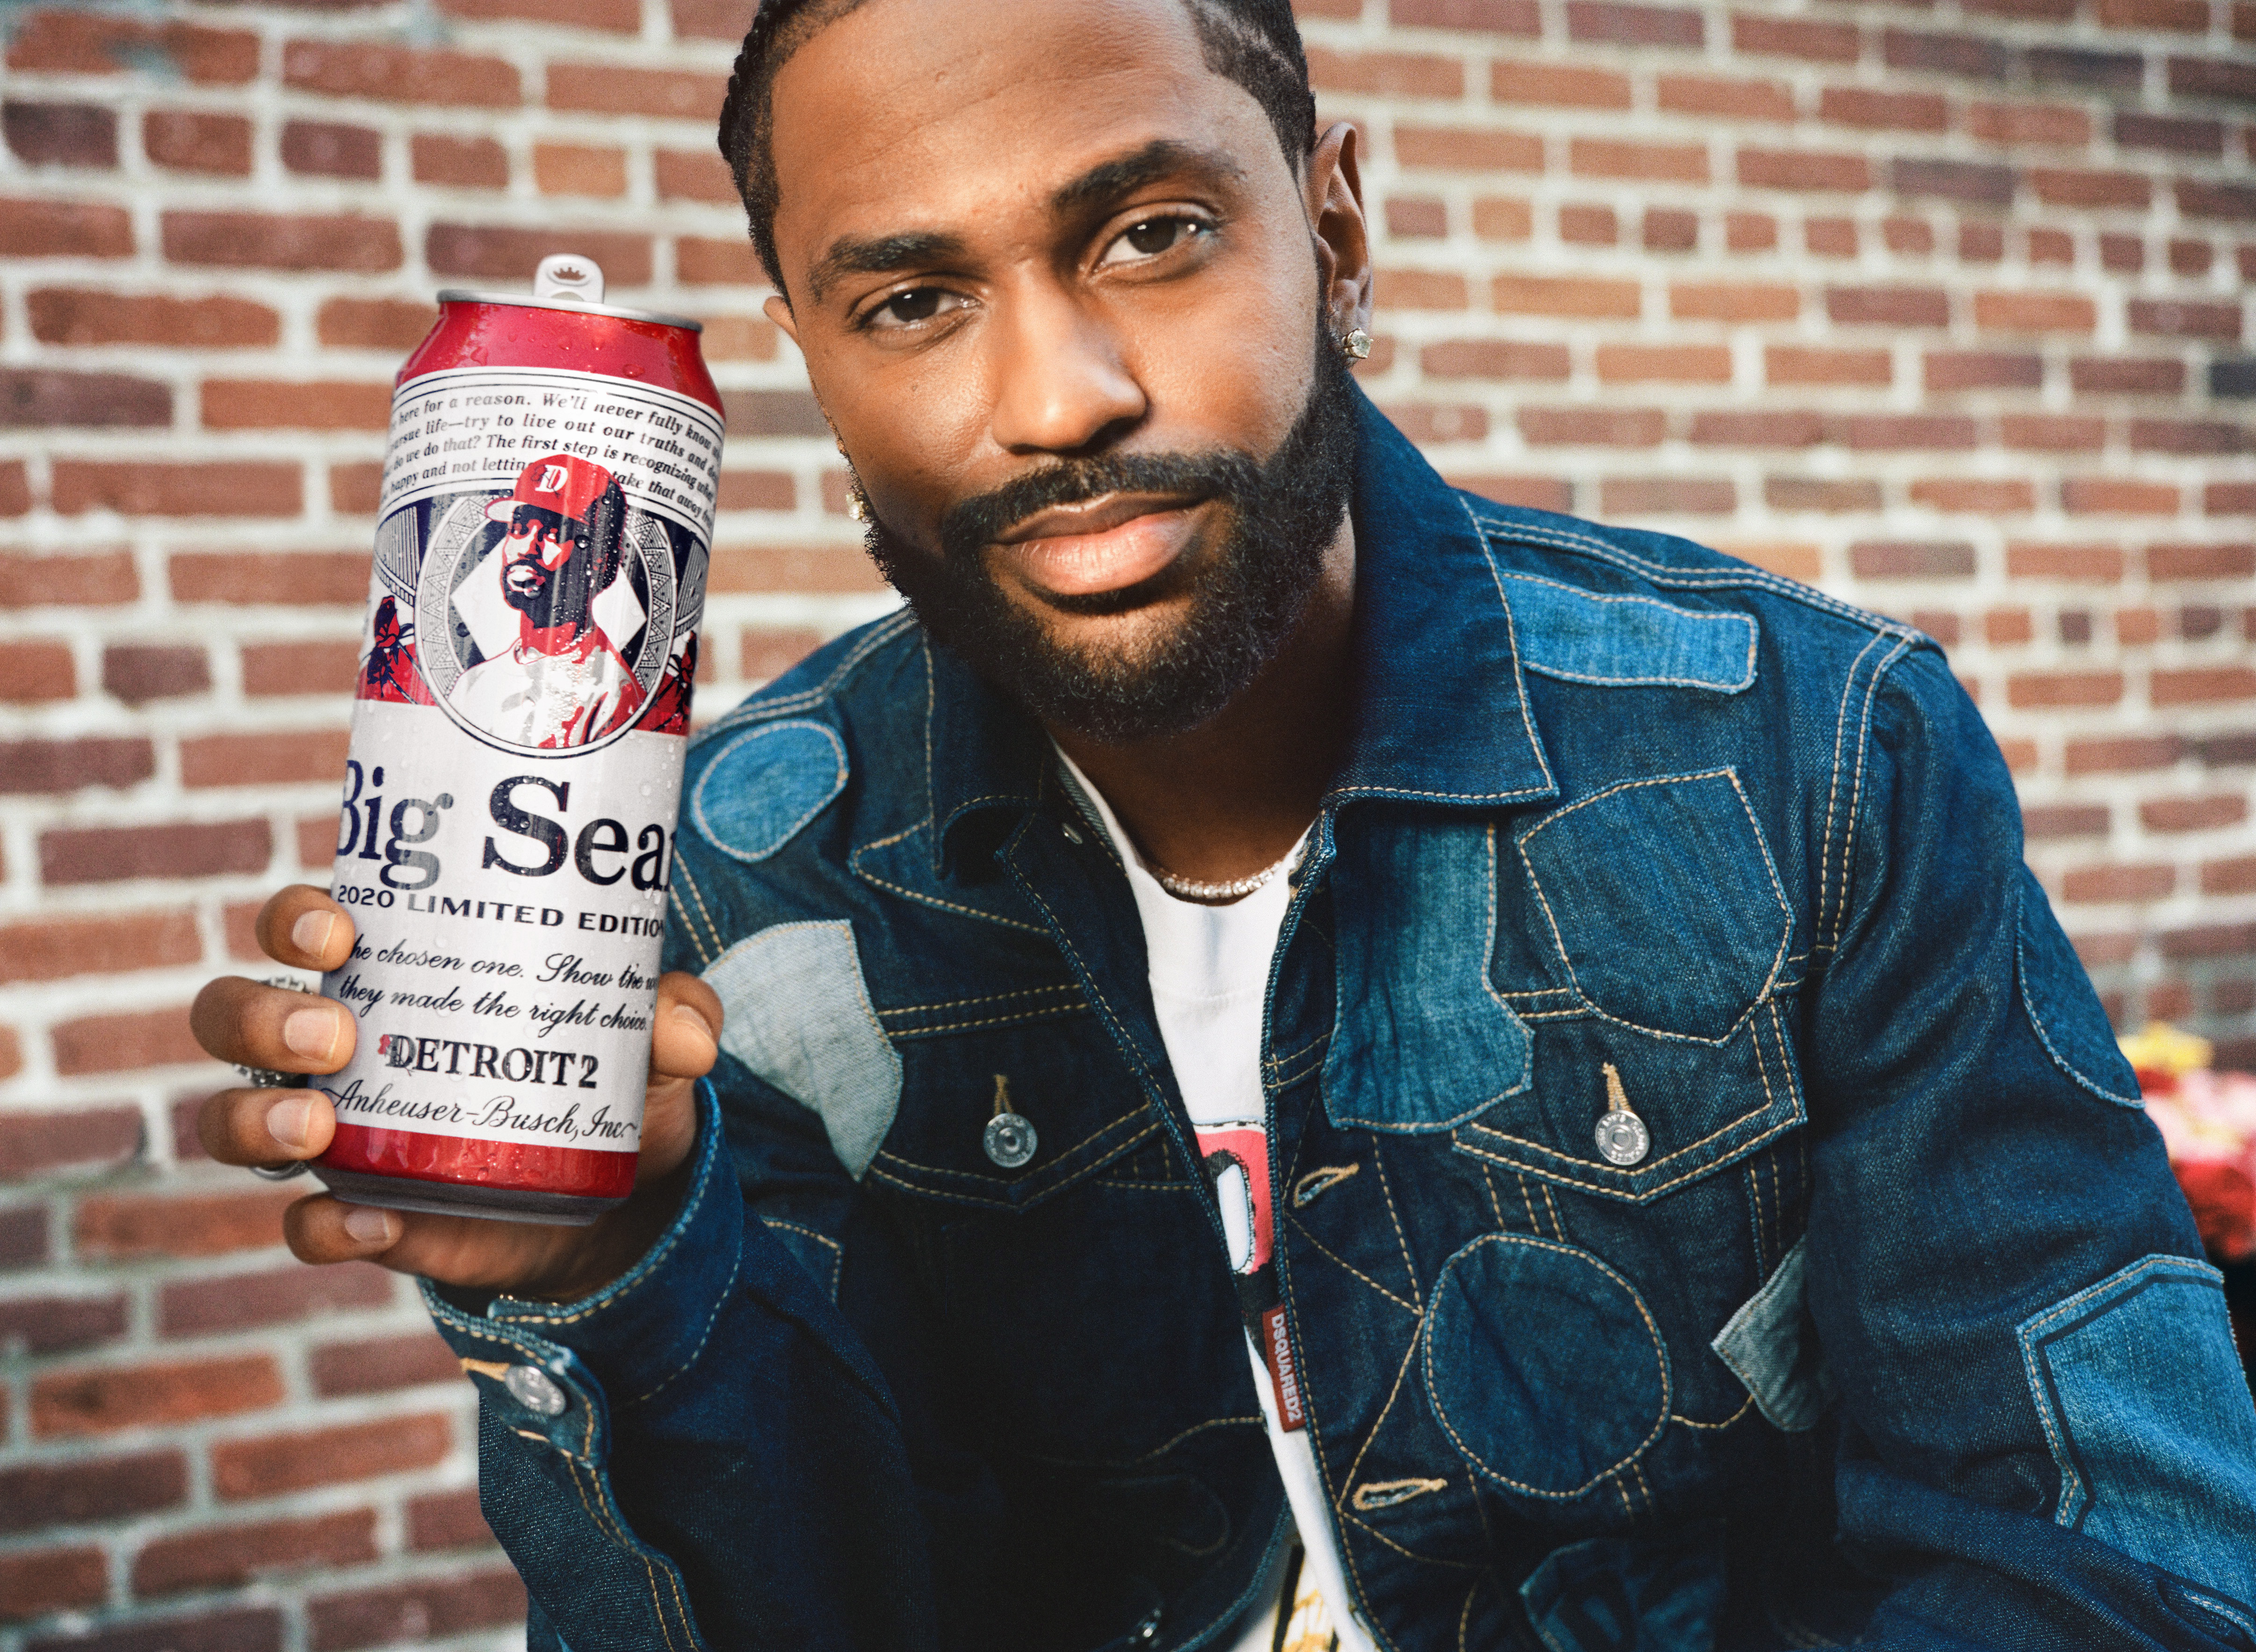 Big Sean wears a jean jacket and holds up a tall boy with his face on it.